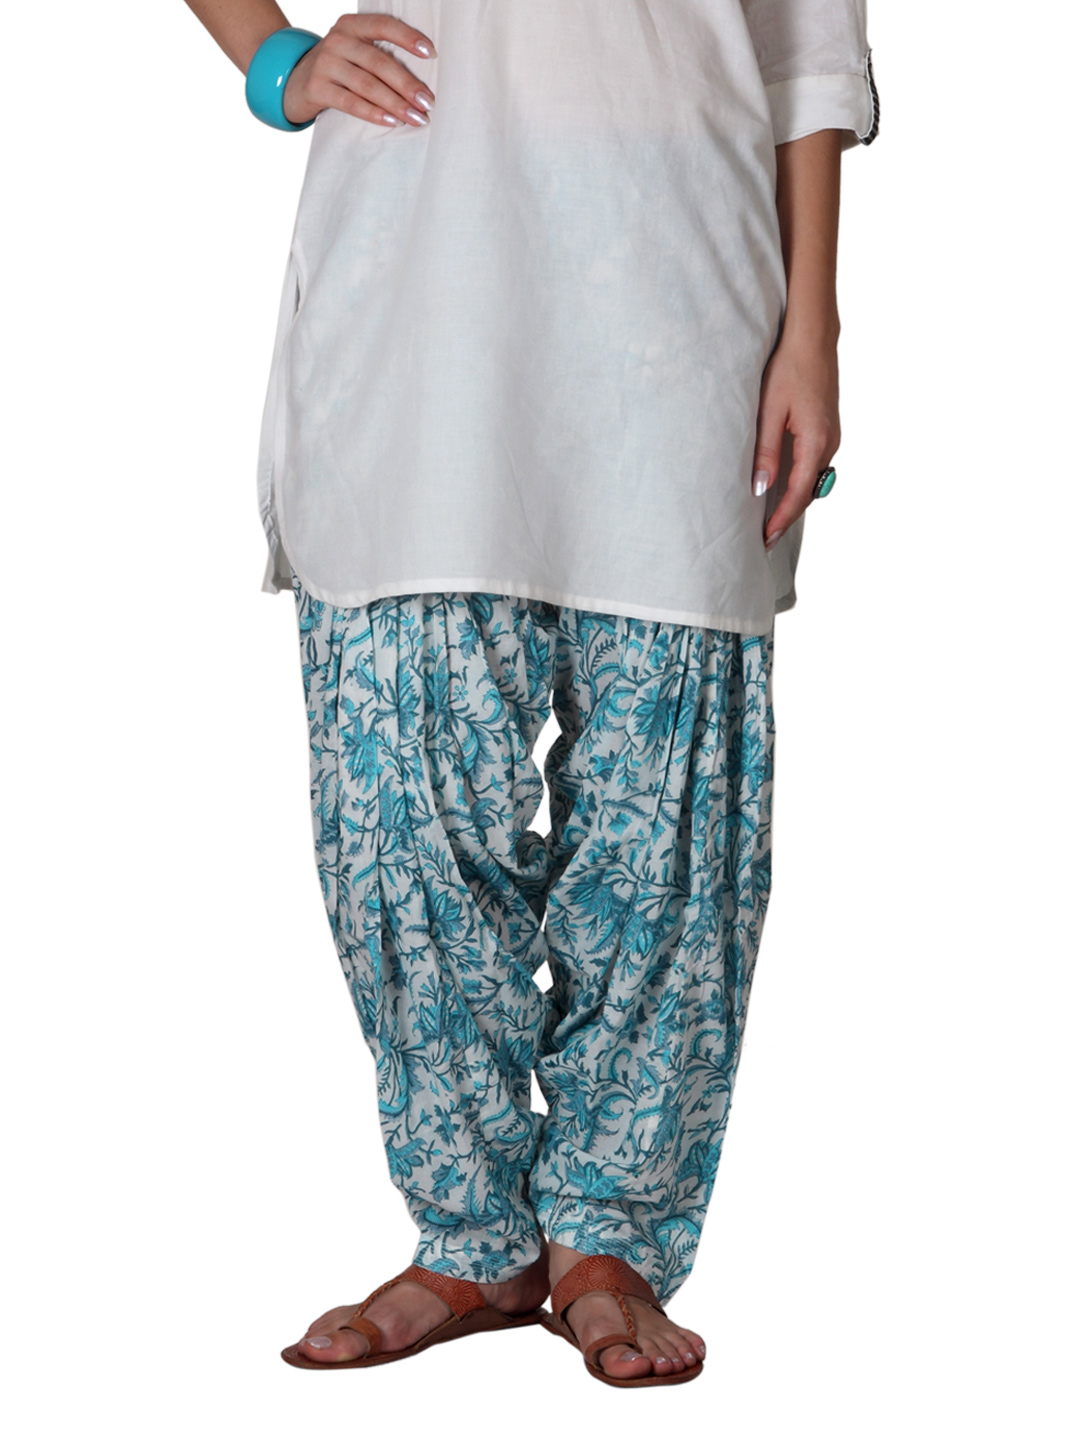 Fabindia Women White Printed Patiala